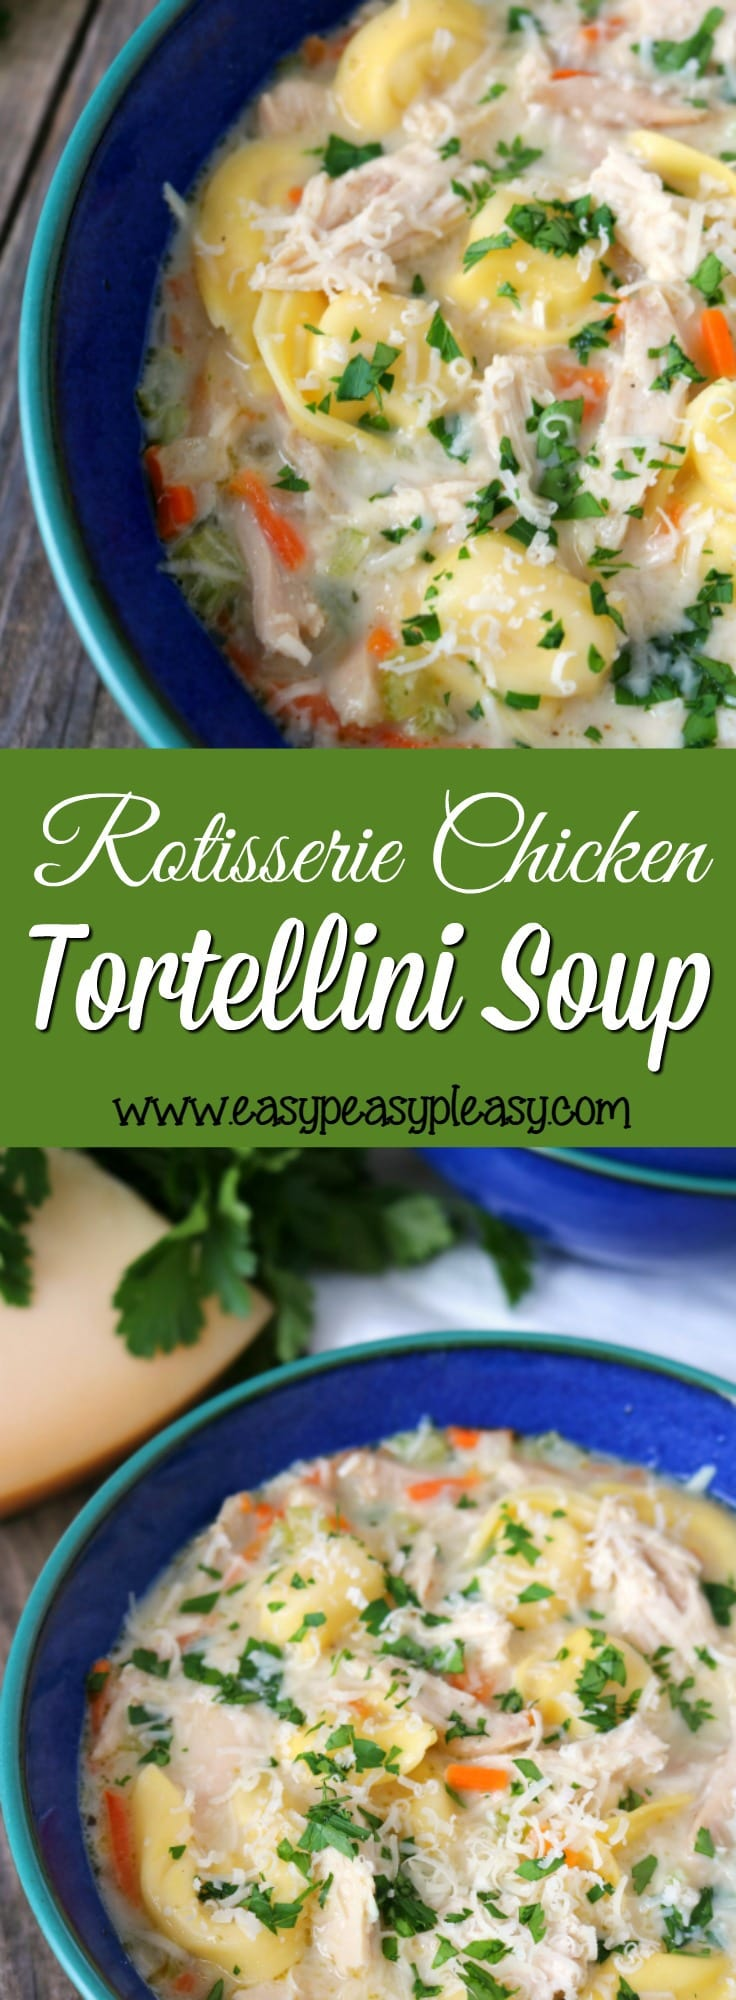 Mouthwatering Rotisserie Chicken Tortellini Soup will warm your tummy and warm your soul.